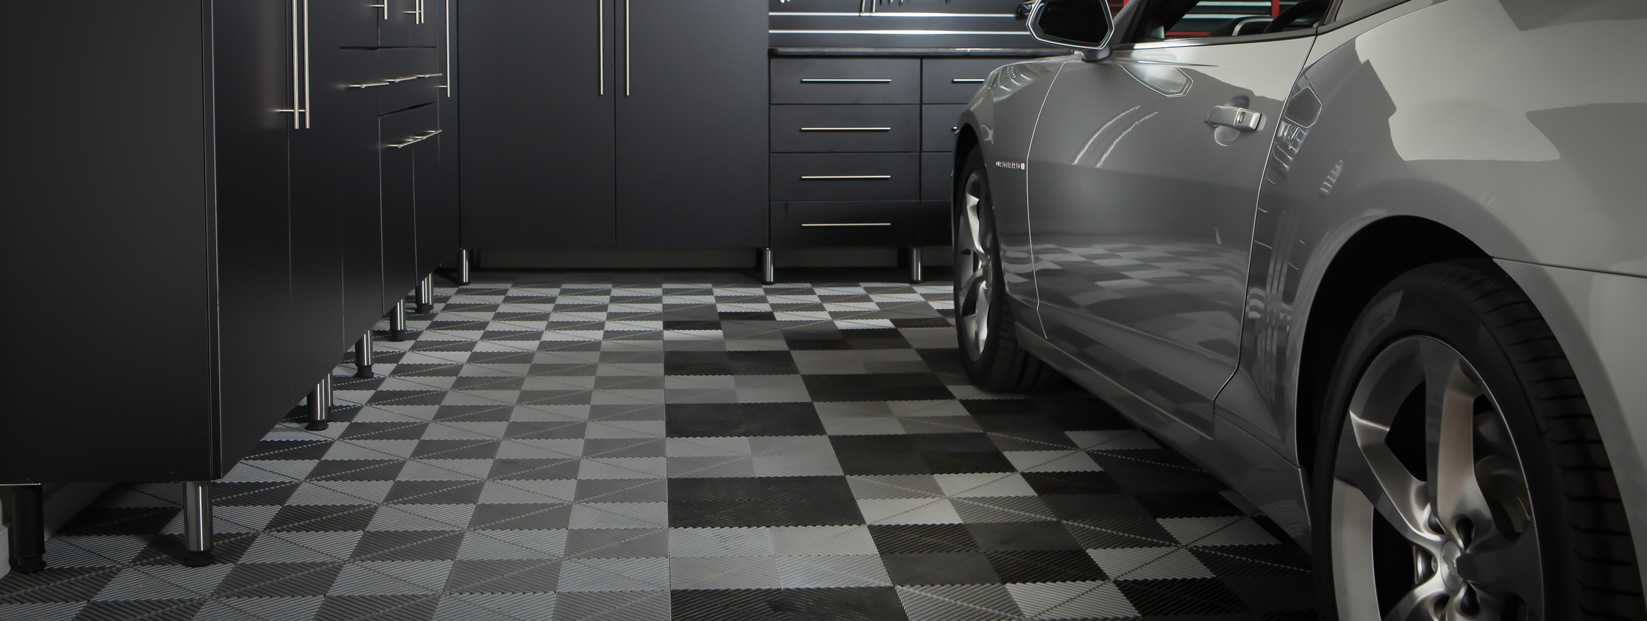 Garage Floor Tiles Bay Area CA